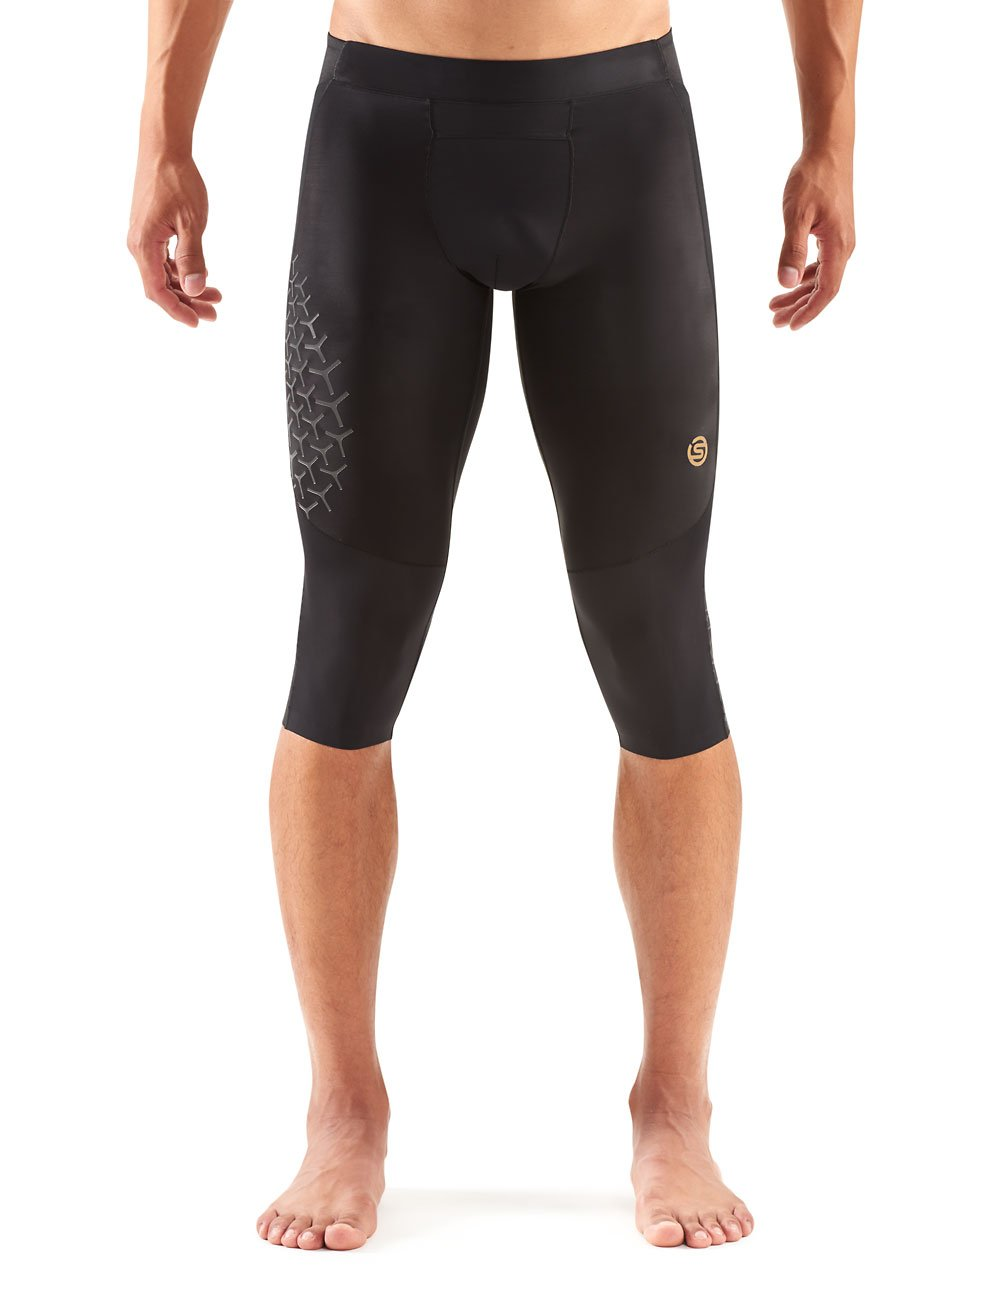 SKINS Men's A400 Compression 3/4 Tights